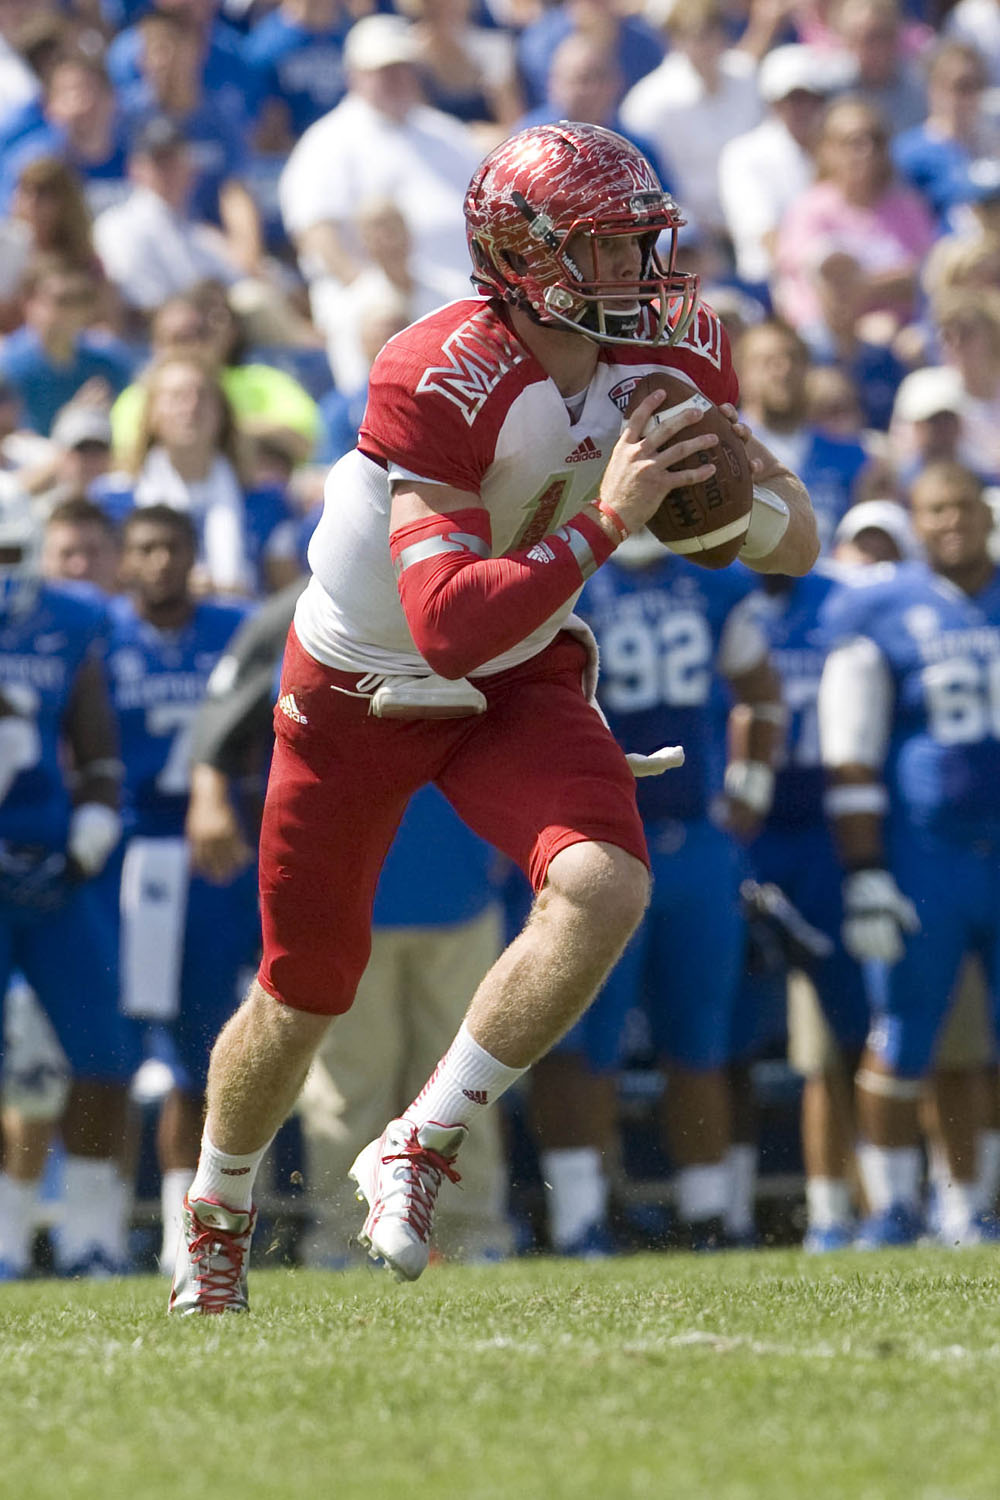 Miami (OH) takes on Kentucky at Commonwealth Stadium on Sep 7, 2013. (Mark Zerof/USA TODAY Sports)